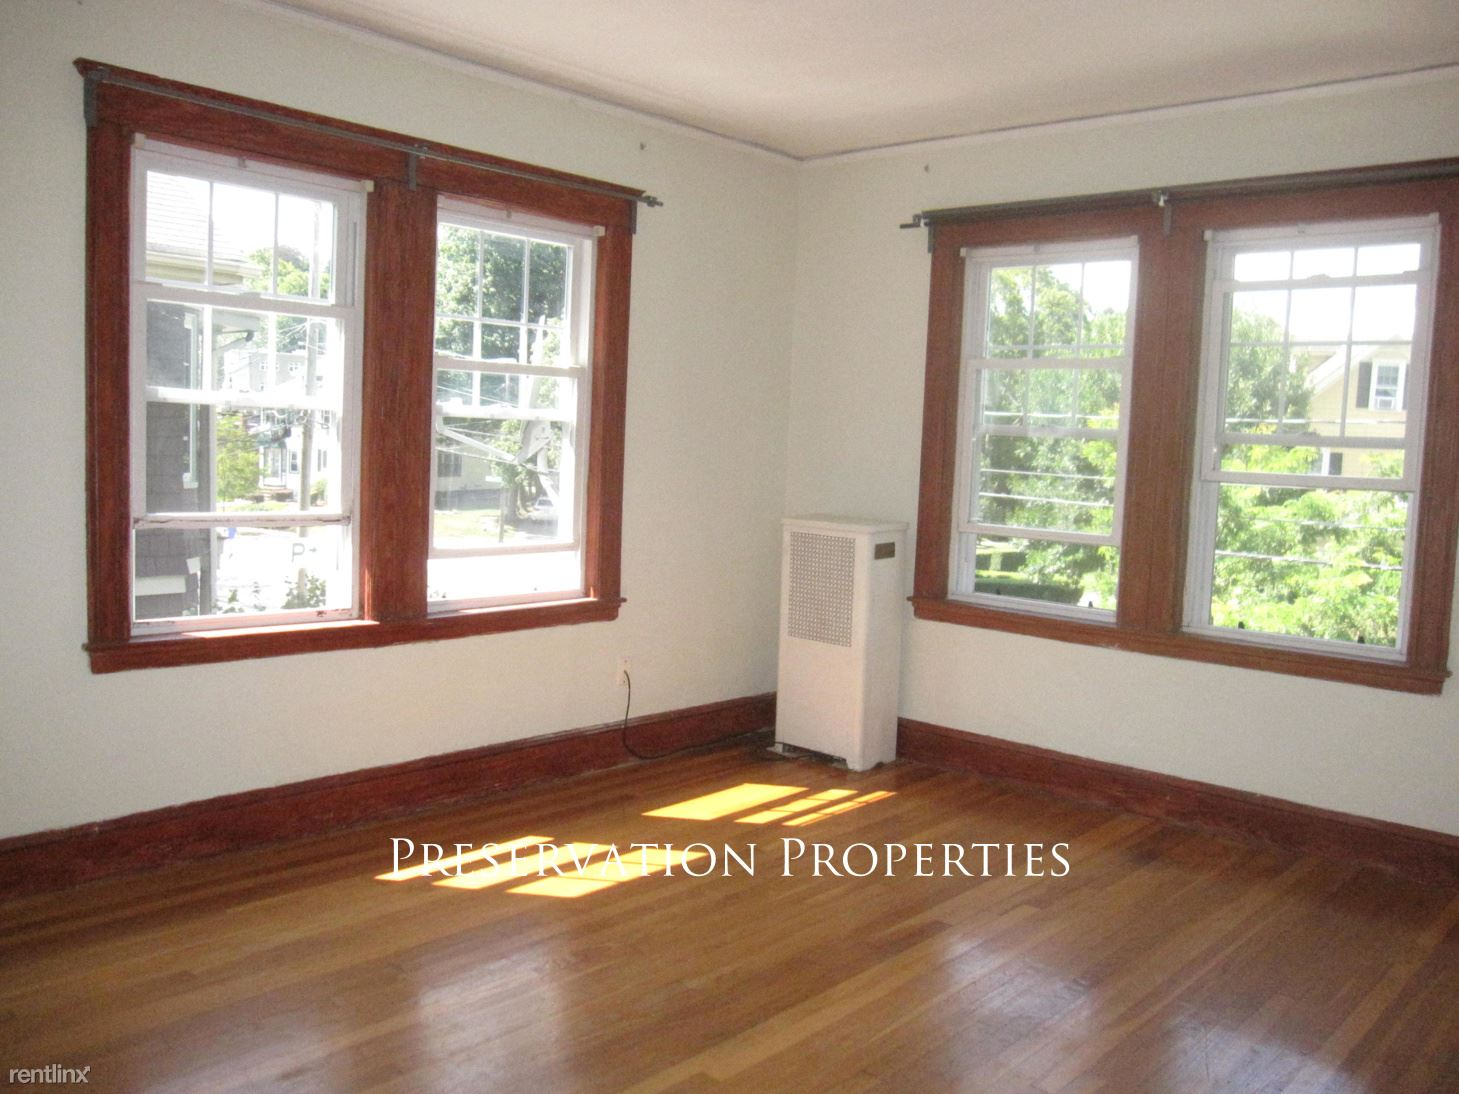 33 Channing Rd, Belmont, MA - $2,100